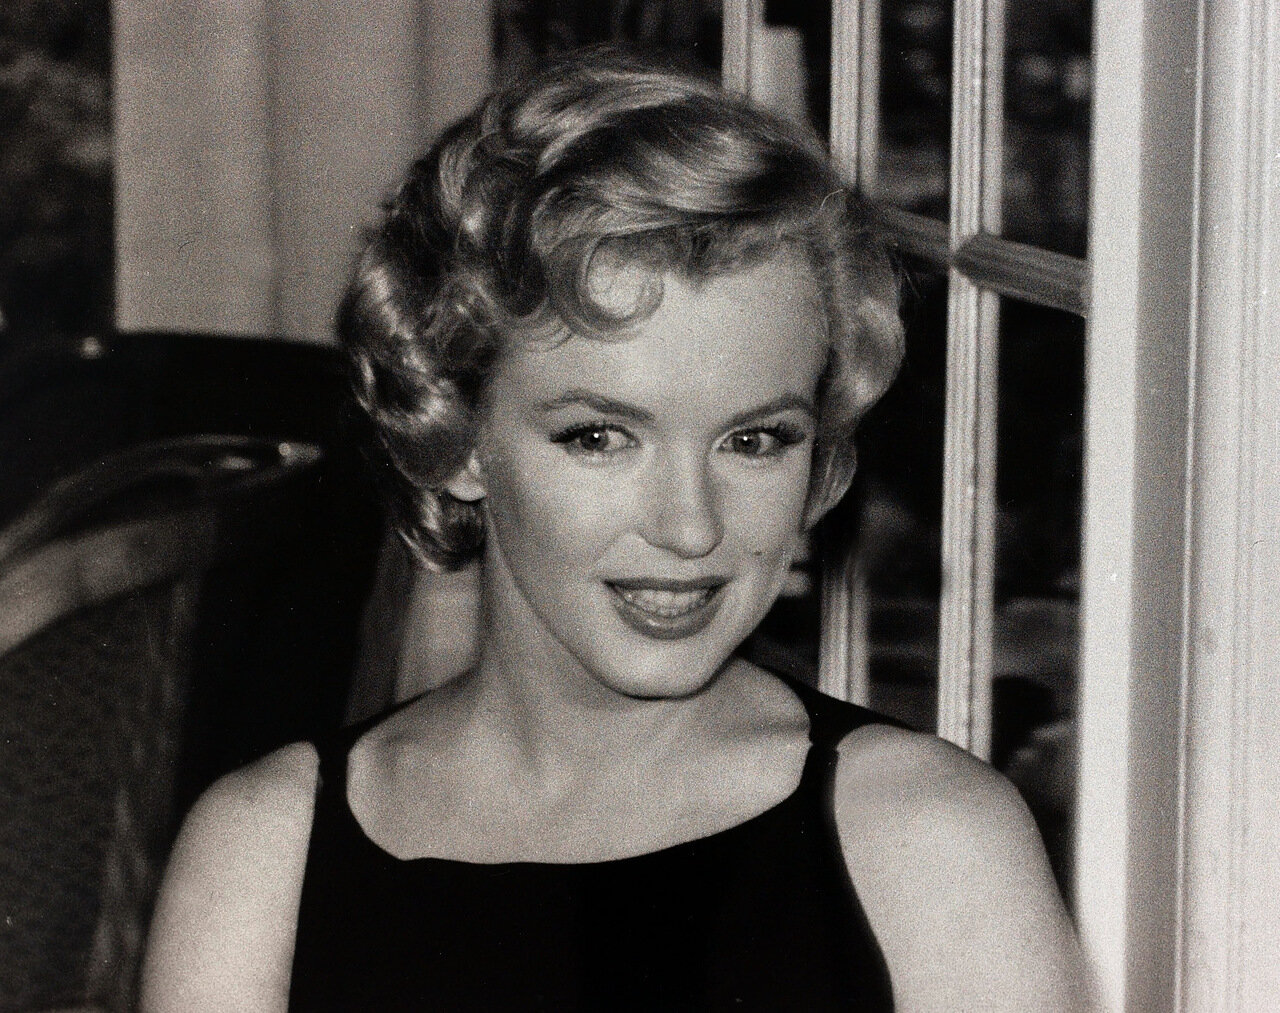 Entertainment. Cinema. London, England. 16th July 1956. American film star Marilyn Monroe at a reception. Marilyn Monroe was one of the most glamorous female stars of her era.